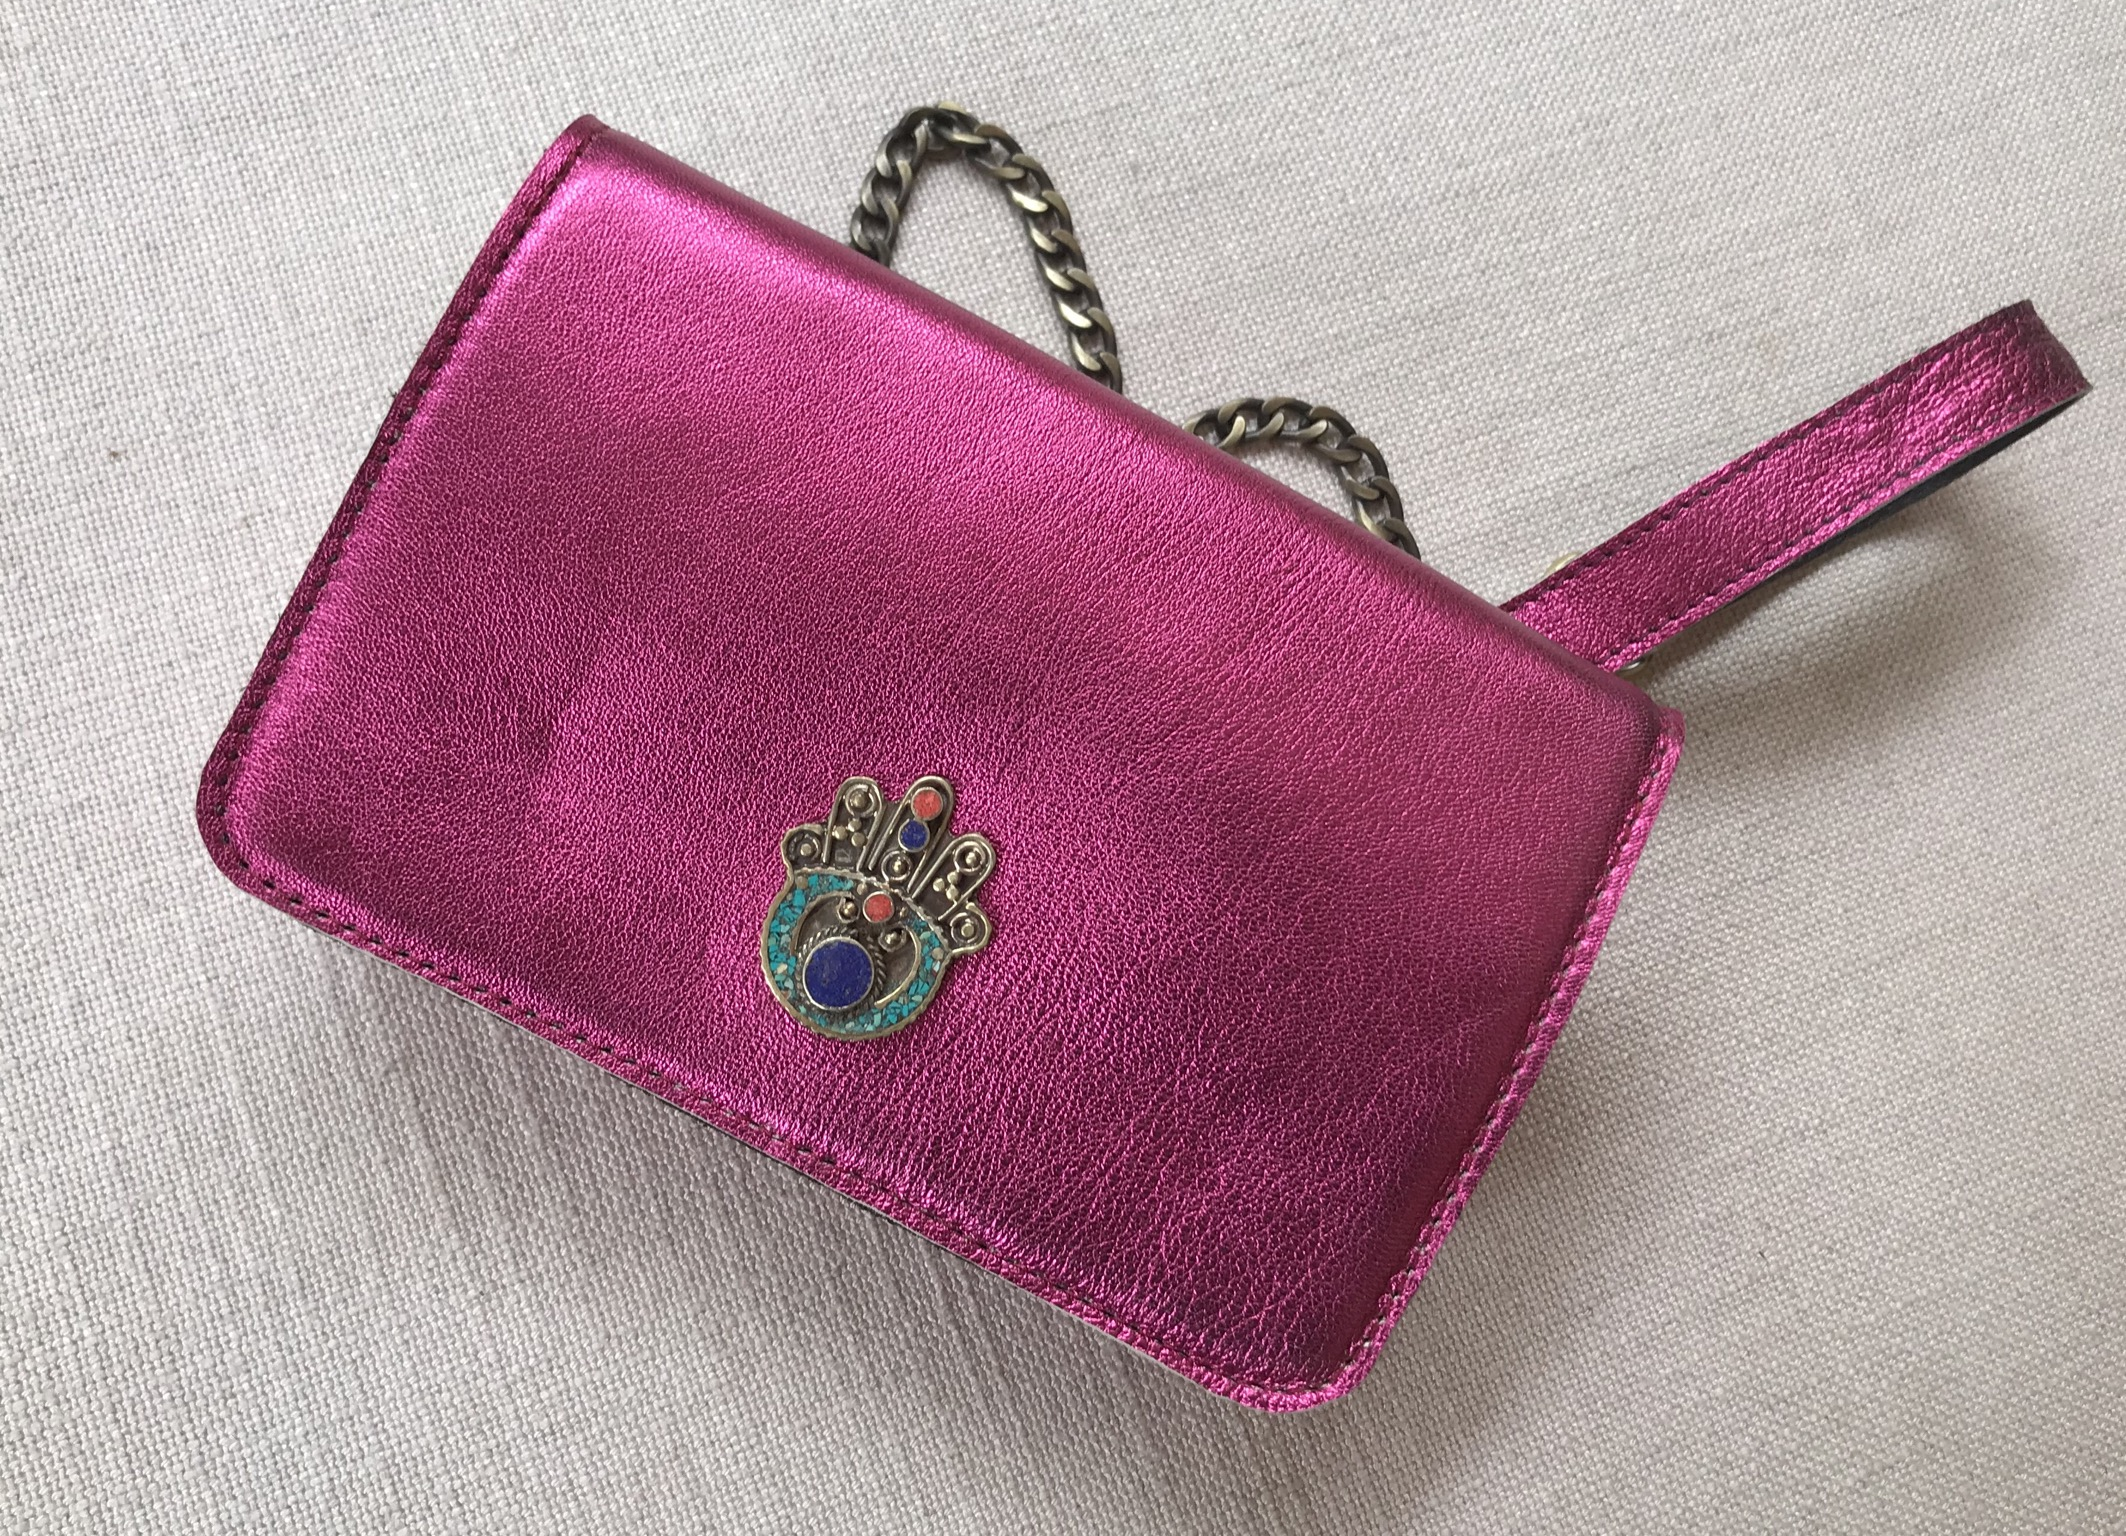 Bag mini leather metallic pink fushia with khmissa